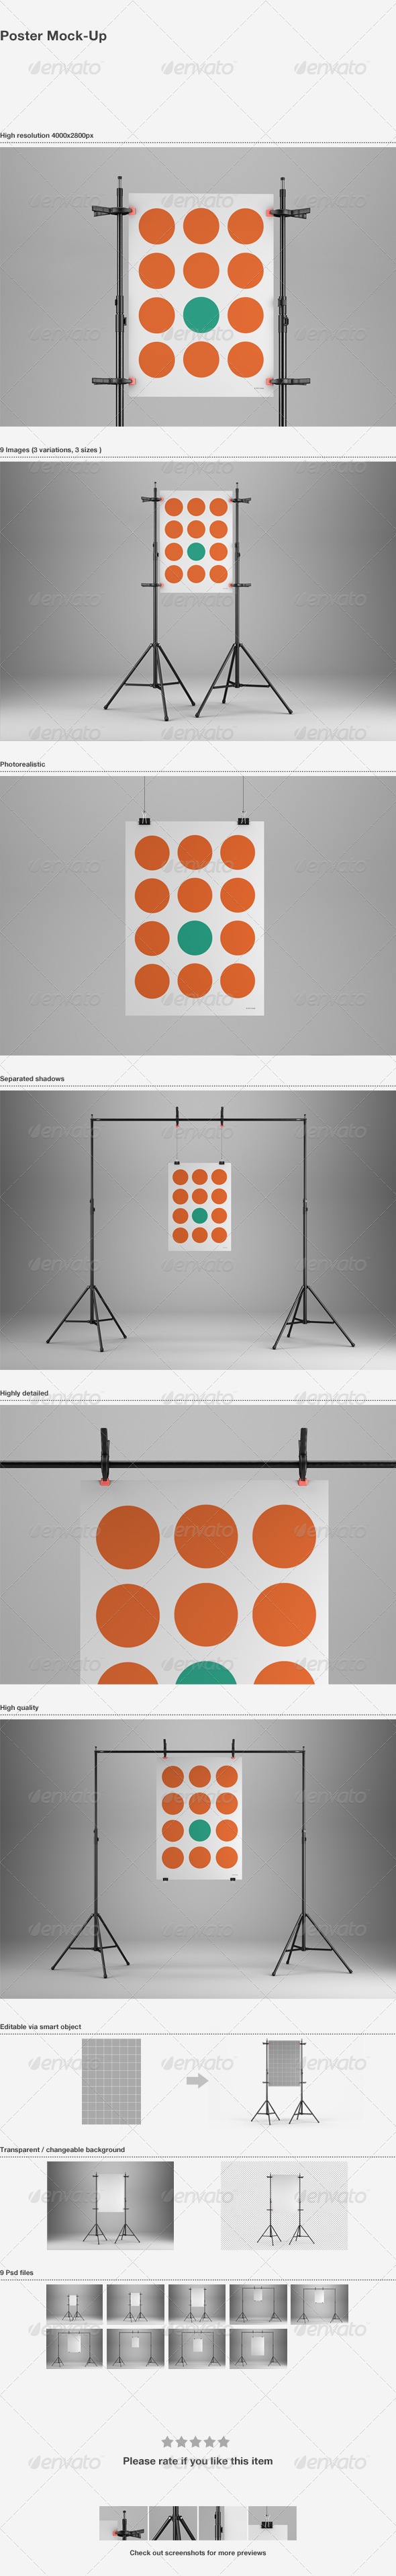 Poster Mock-Up - Posters Print